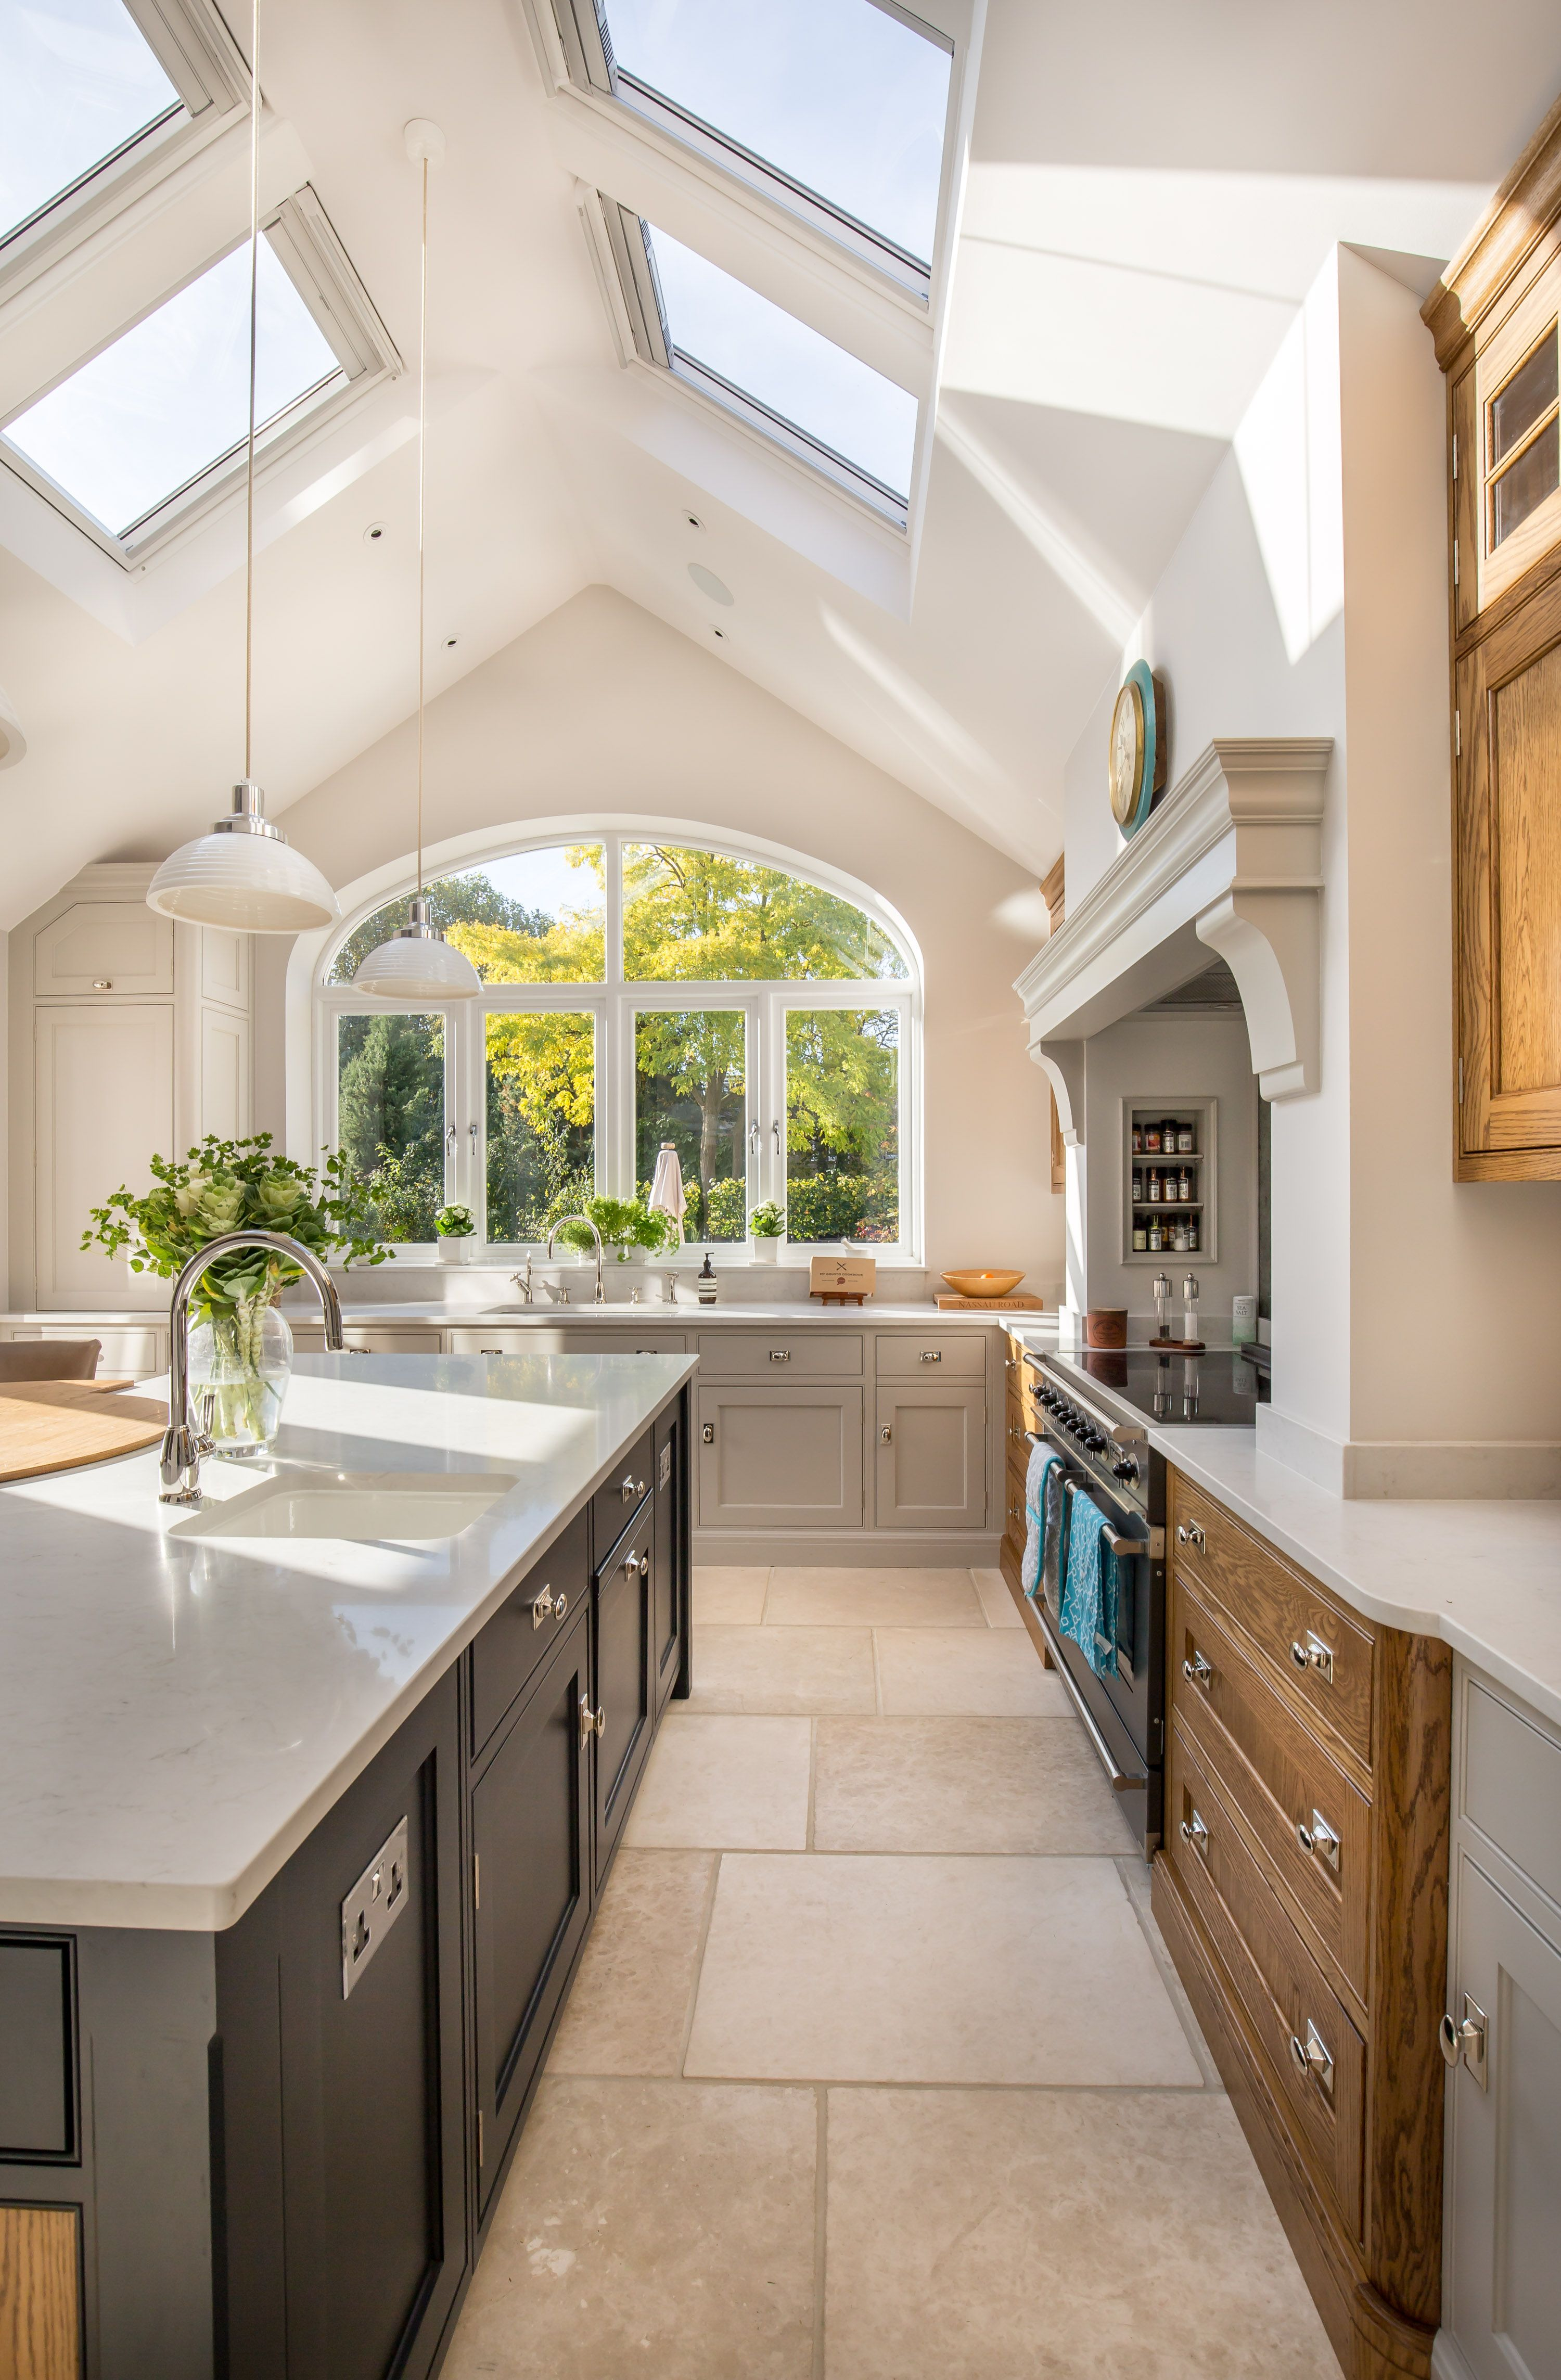 Stunning kitchen extension  pitched roof  vaulted ceiling